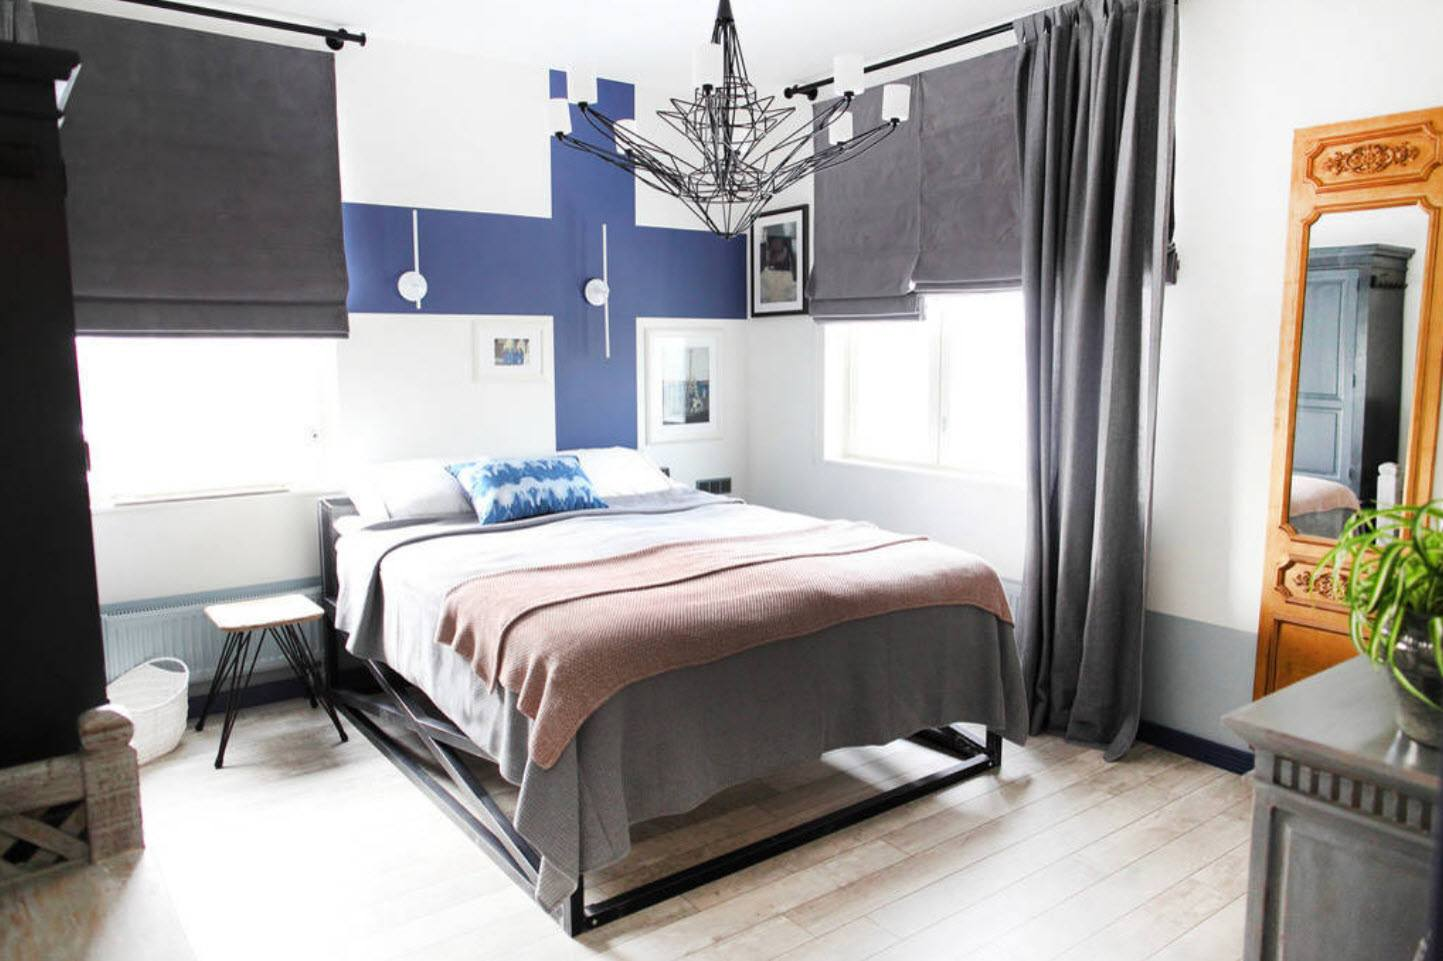 Bedroom Curtains: Full Guide on How to Decorate the Windows. Casual room with large Finnish flag at the wall